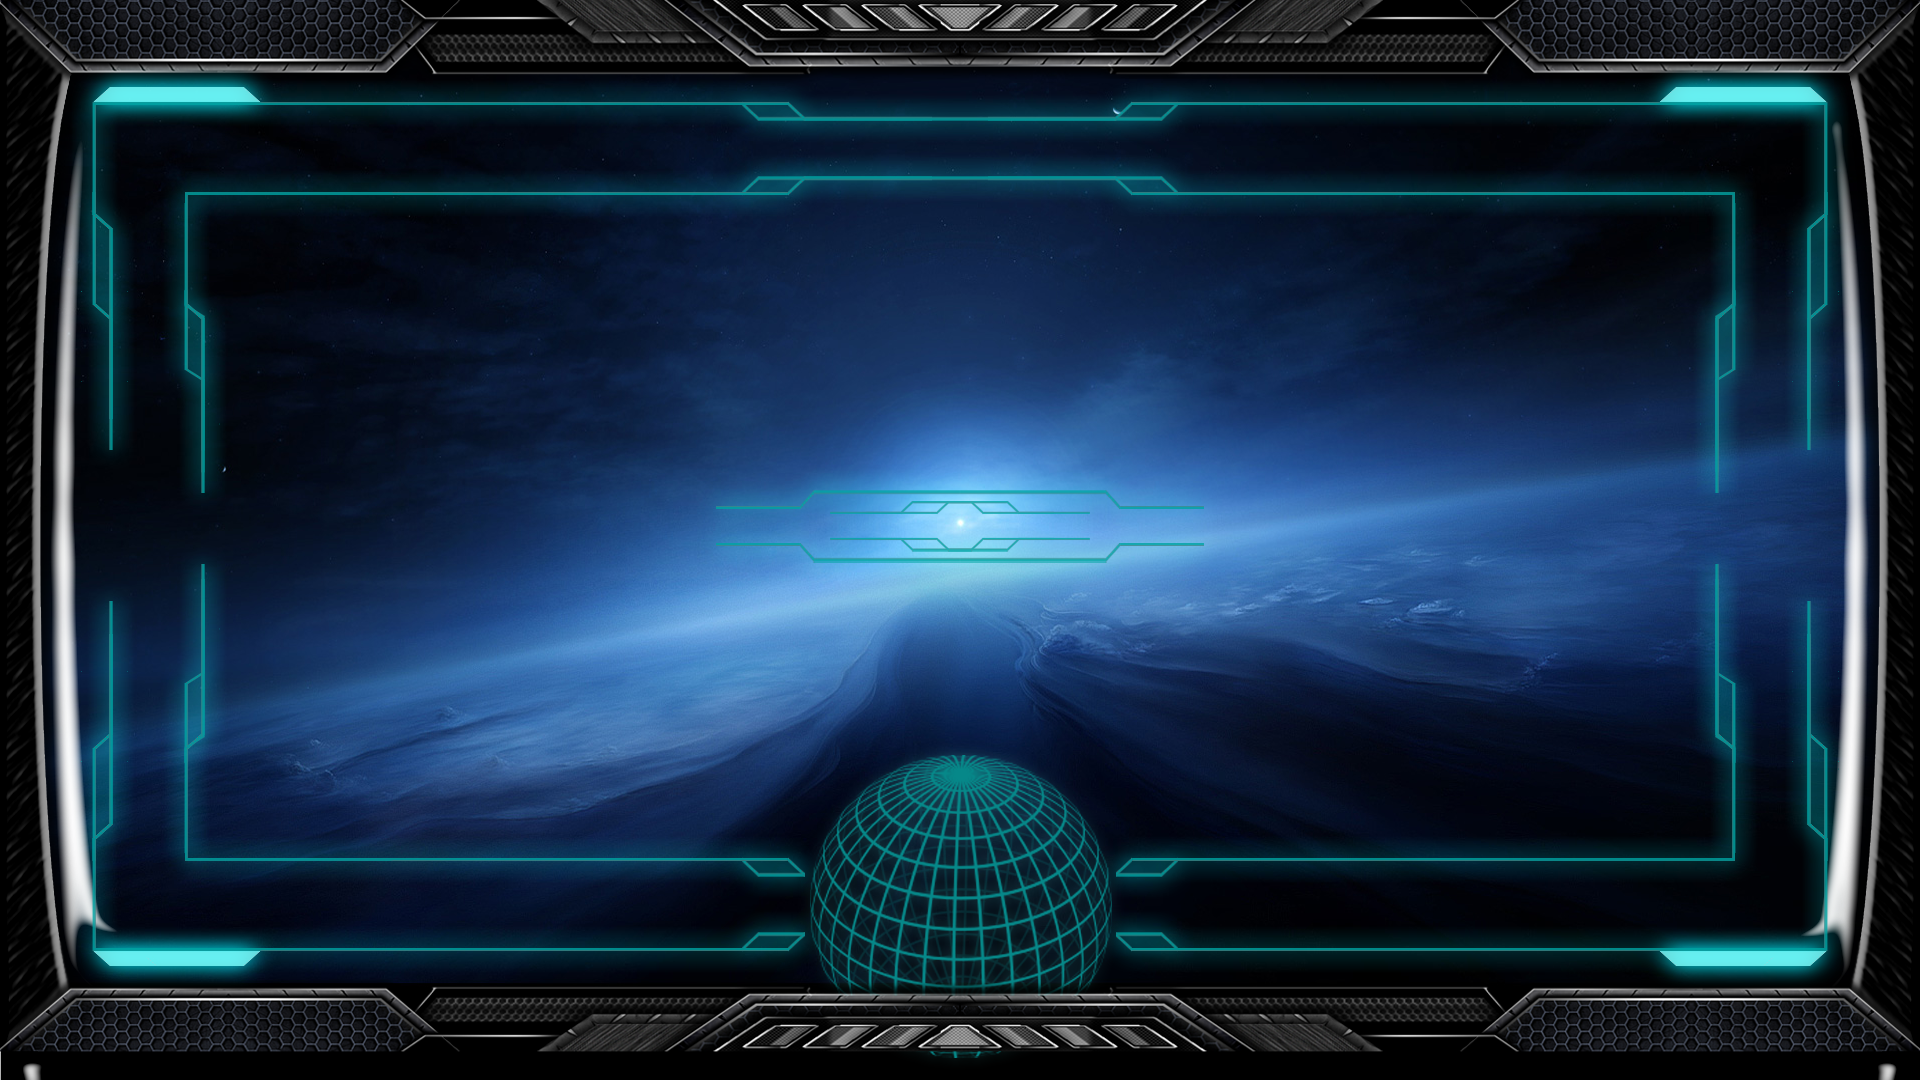 Stargate Interface Space Ship Wallpaper by exostyx 1920x1080